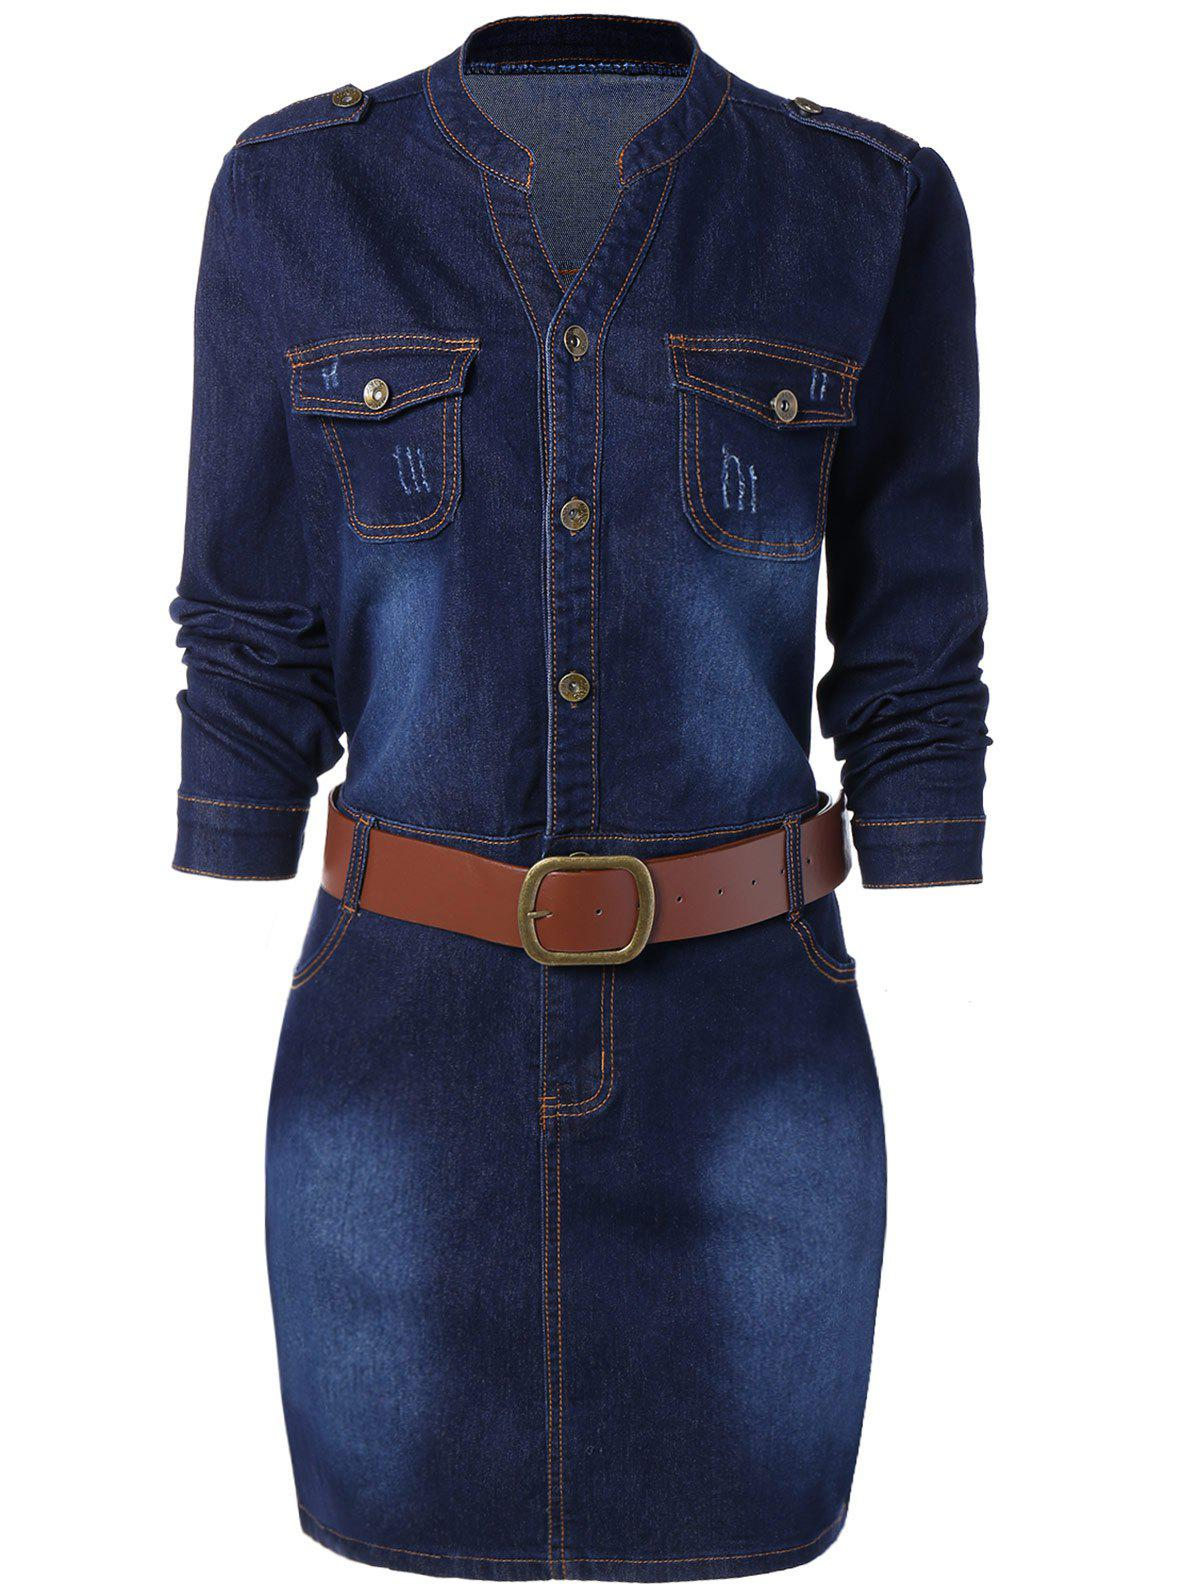 Plus Size Fitted Denim Jean Dress with BeltWOMEN<br><br>Size: 3XL; Color: BLUE; Style: Casual; Material: Cotton Blend,Polyester; Fabric Type: Denim; Silhouette: Sheath; Dresses Length: Knee-Length; Neckline: Stand; Sleeve Length: Long Sleeves; Pattern Type: Patchwork; With Belt: Yes; Season: Fall,Spring; Weight: 0.846kg; Package Contents: 1 x Dress  1 x Belt;